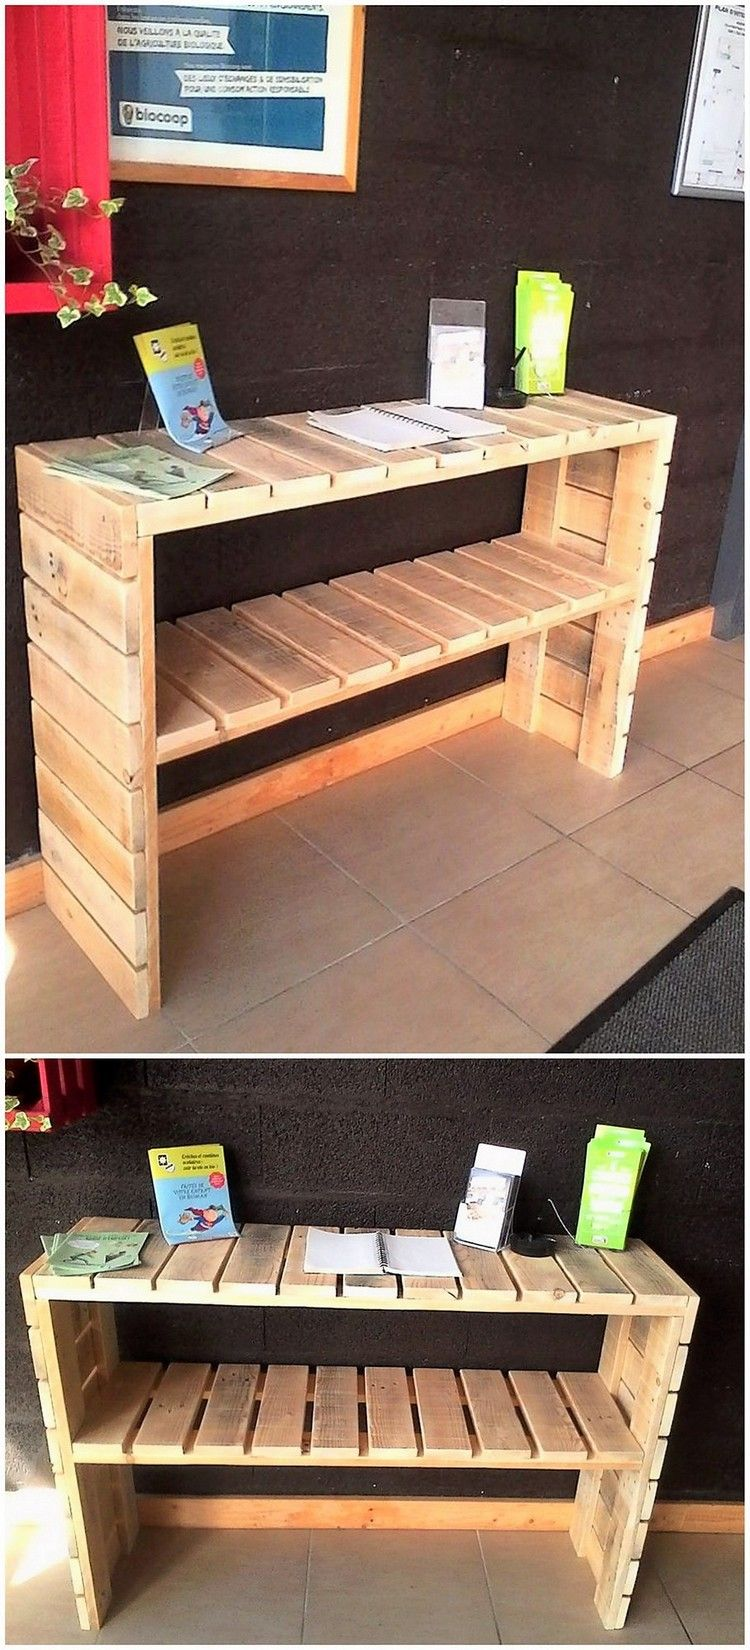 shipping pallet furniture ideas. Fantastic Ways Of How To Recycle Used Shipping Pallets Pallet Furniture Ideas T